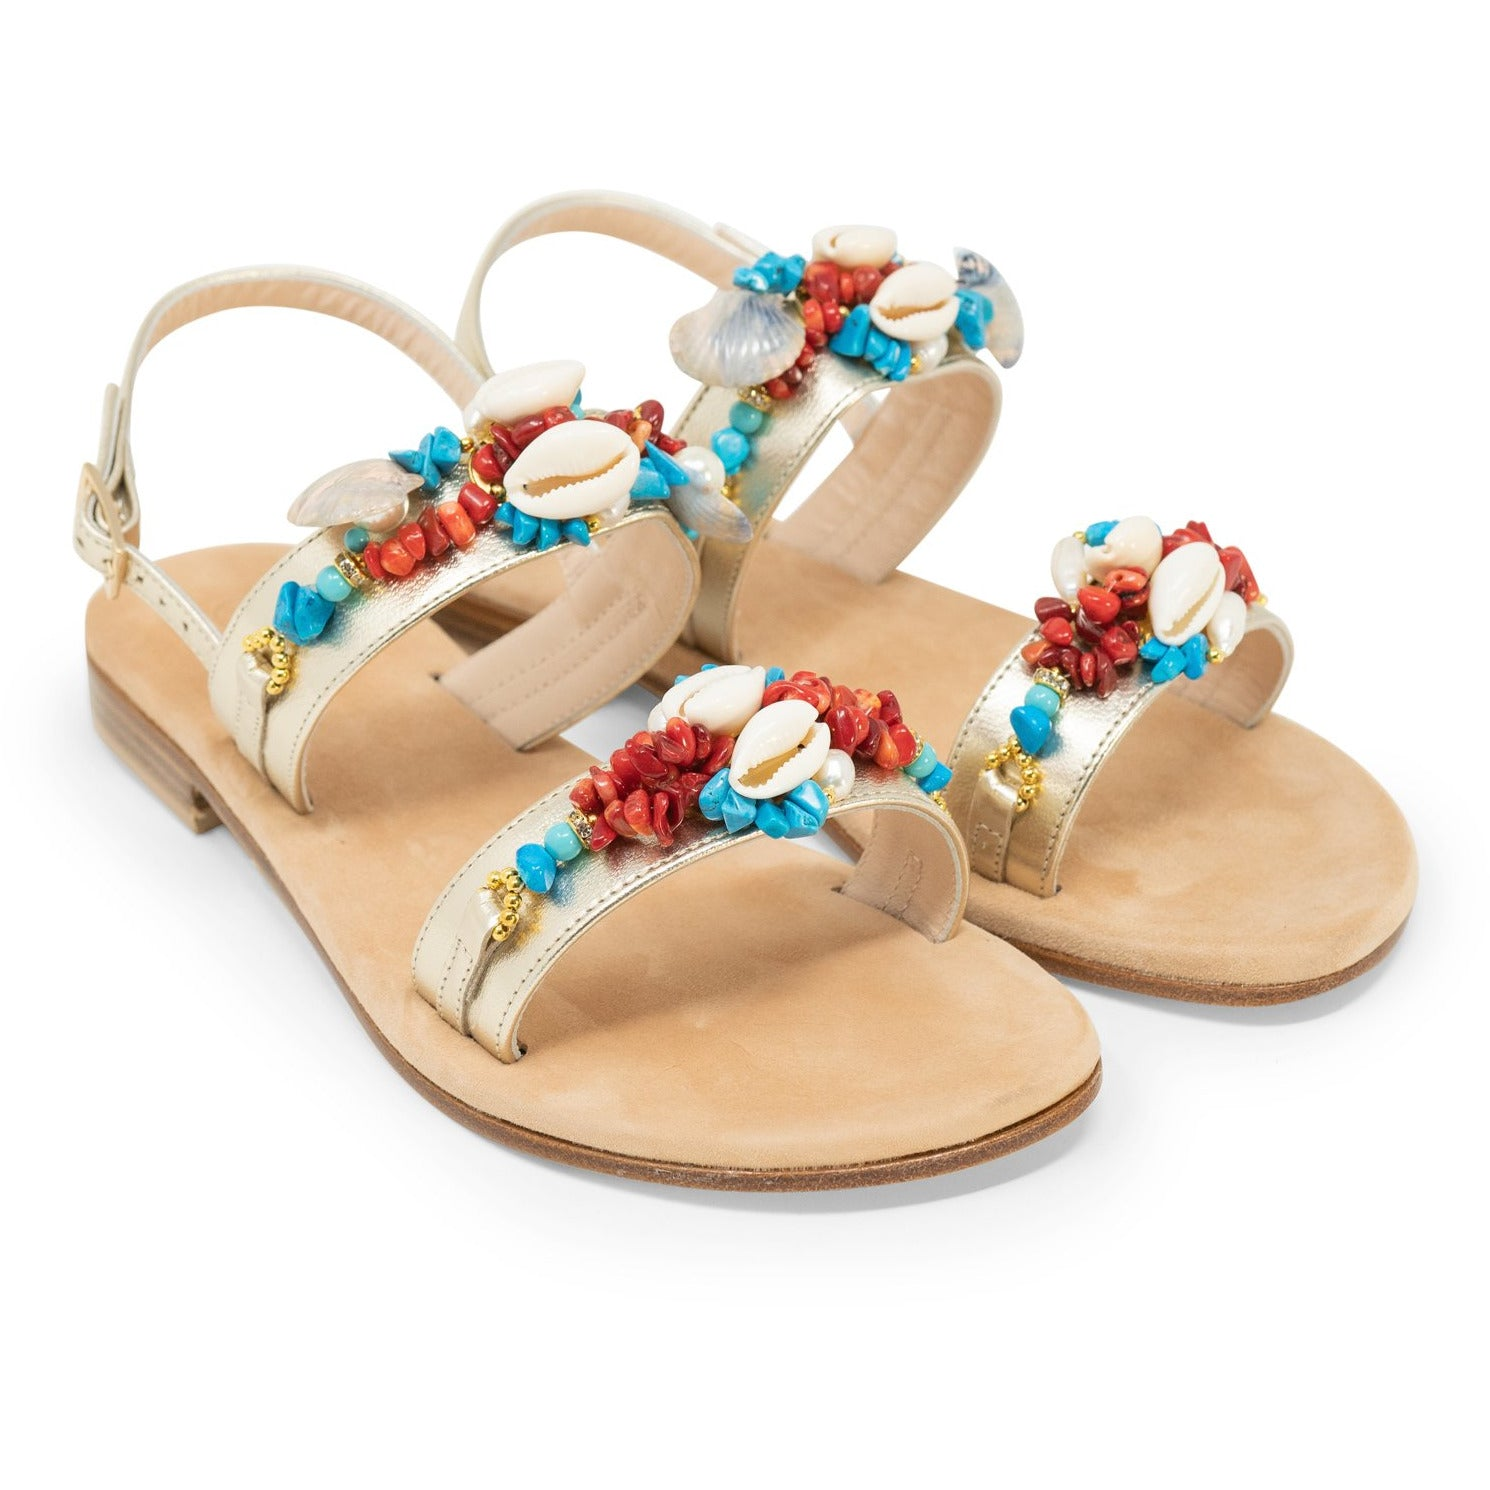 MPOWC4820 T20 Women Sandals - New Spring Summer 2020 Collection